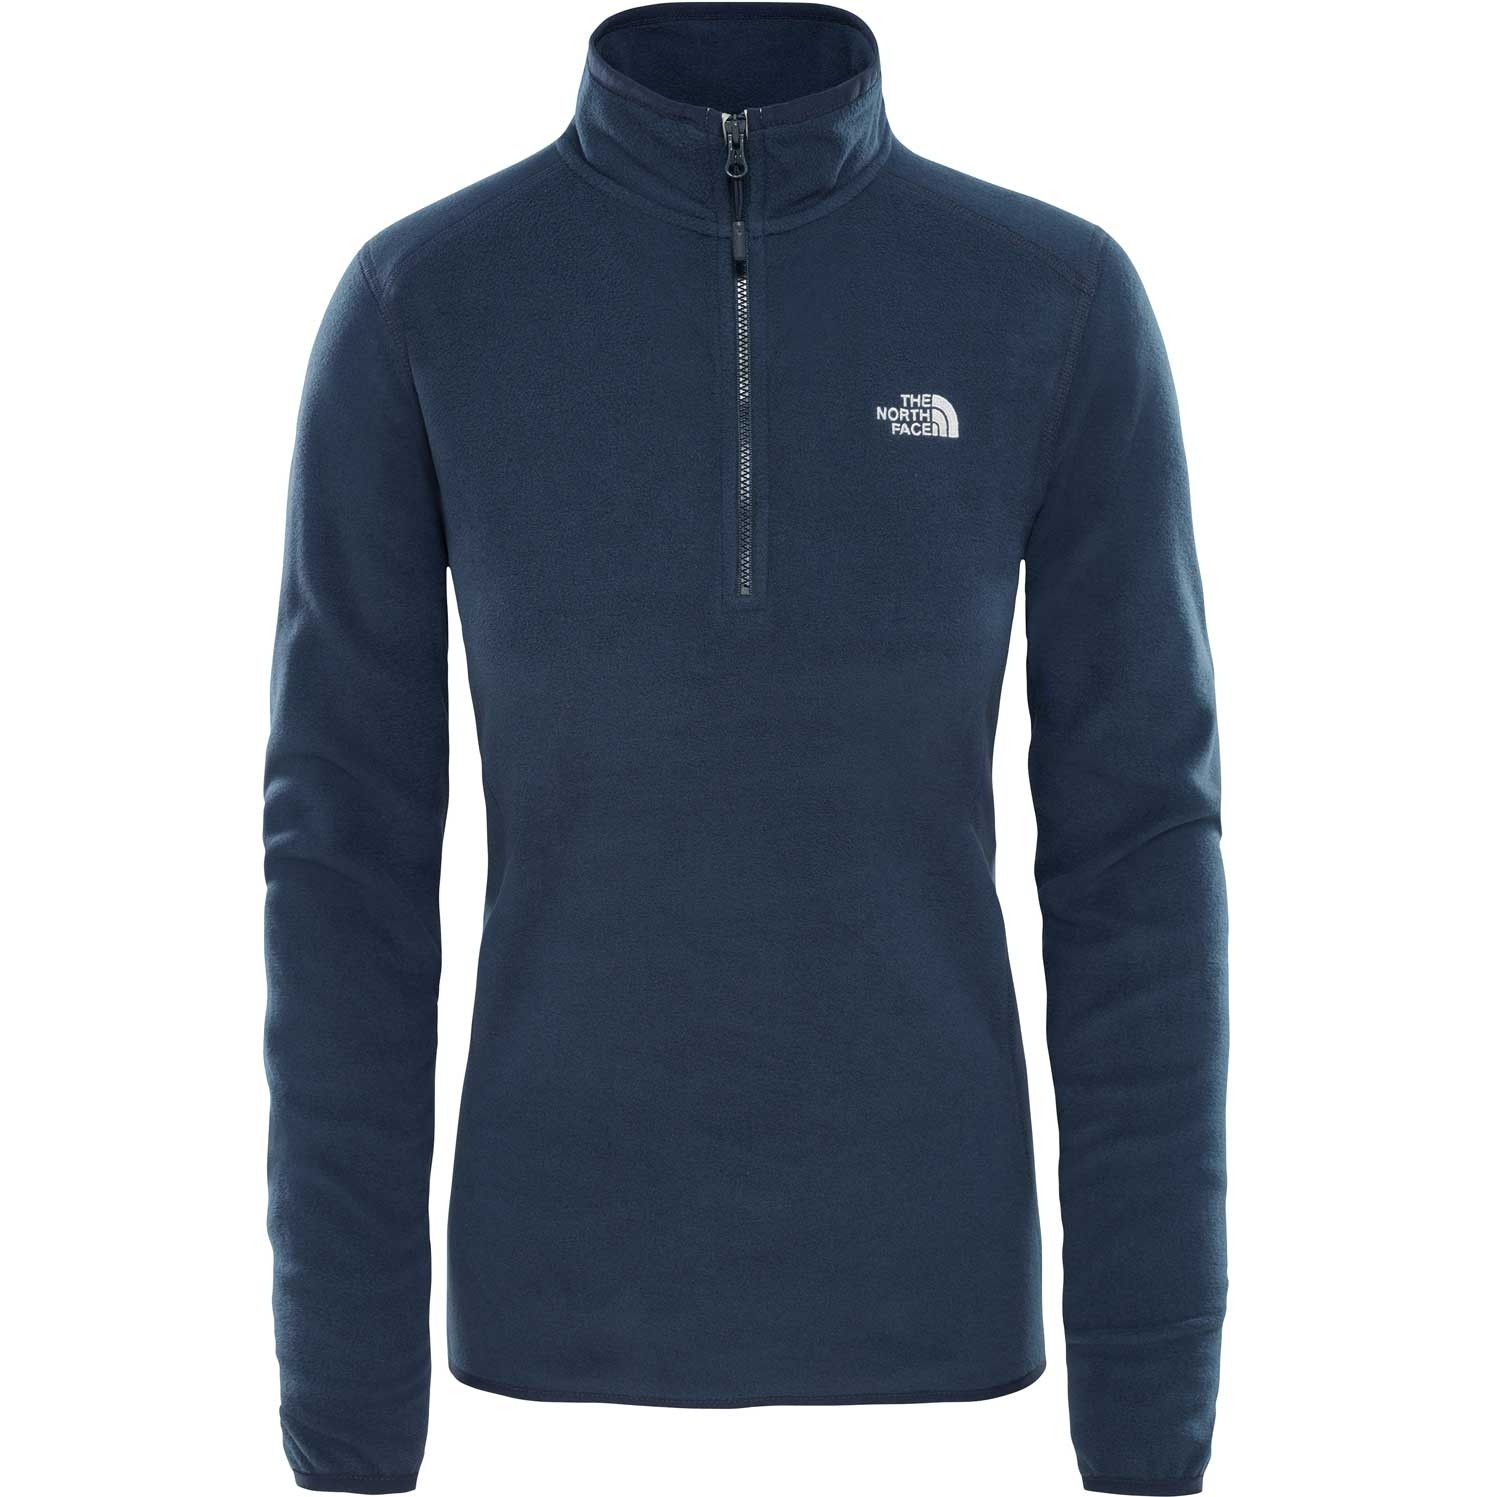 TNF 100 Glacier 1/4 Zip Womens Fleece - Urban Navy